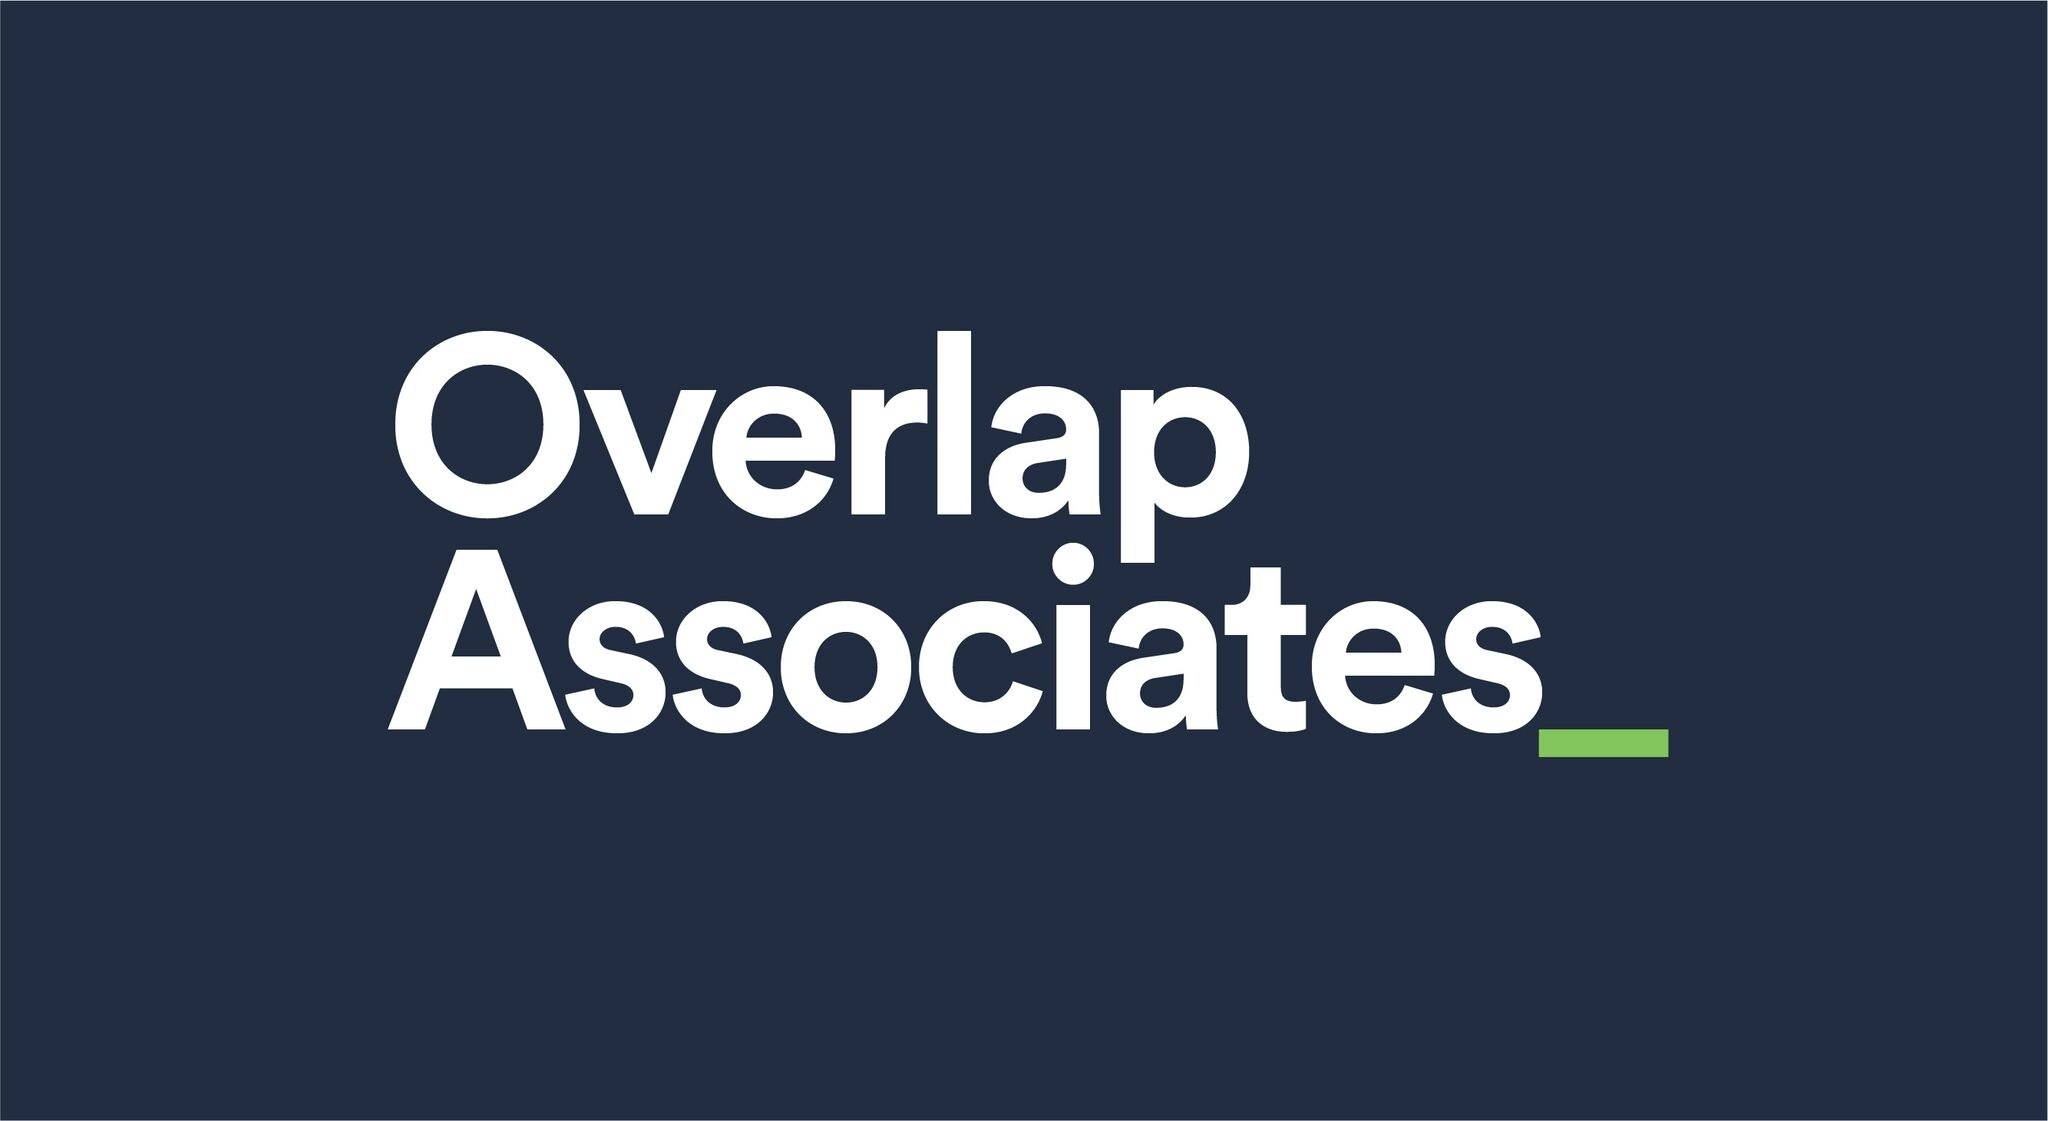 A New Look For Overlap Associates